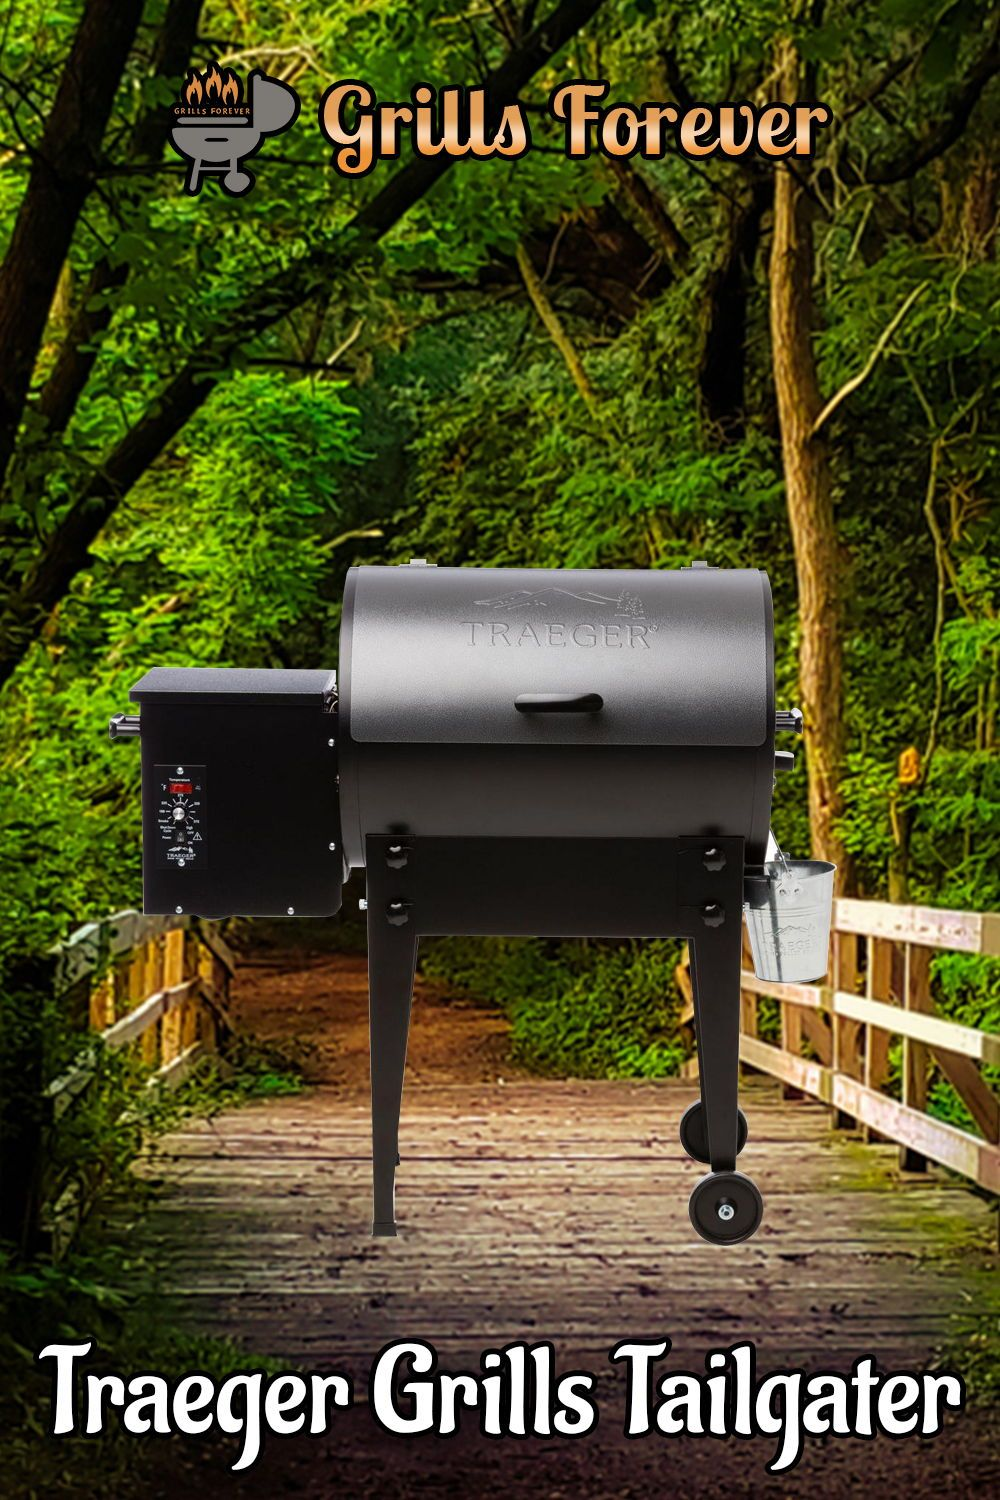 Camp Chef Pg24 Pellet Grill And Smoker Pellet Grill Reviews Pellet Smoker Reviews Best Pellet Smoker 201 Pellet Grill Reviews Grilling Best Electric Smoker